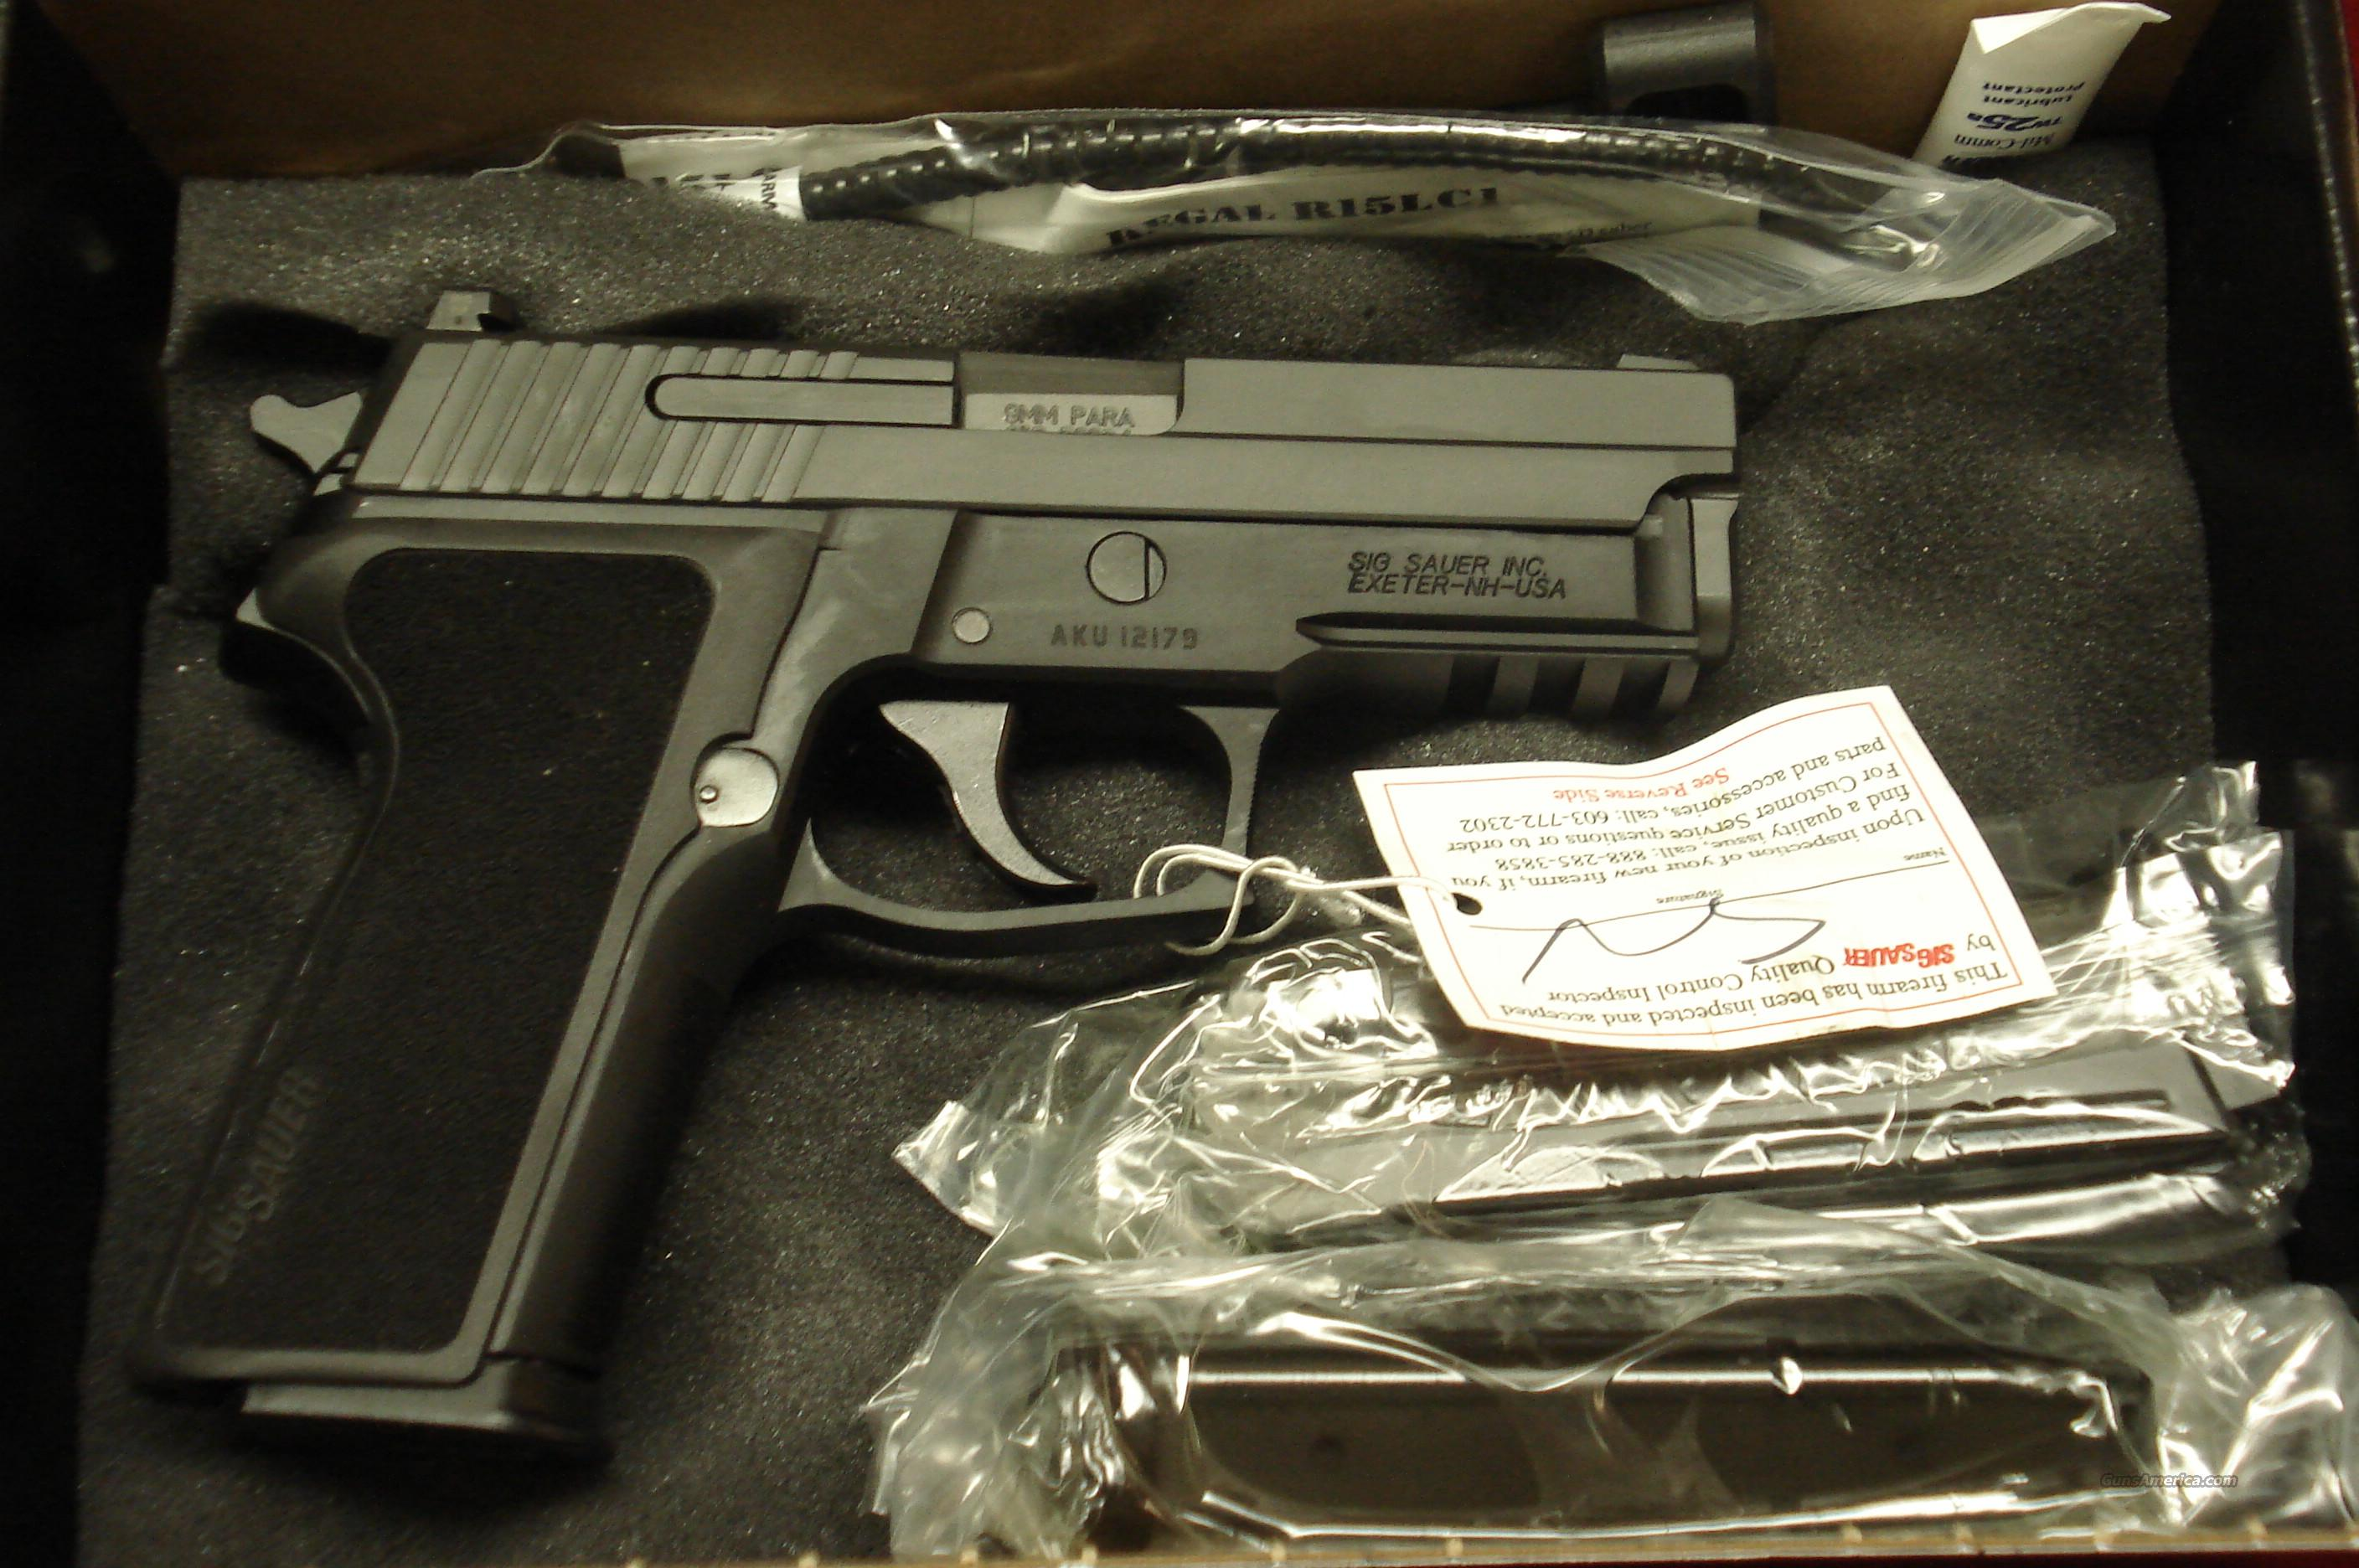 SIG SAUER P229 9MM WITH NIGHT SIGHTS AND 3 HIGH CAPACITY MAGAZINES NEW   Guns > Pistols > Sig - Sauer/Sigarms Pistols > P229